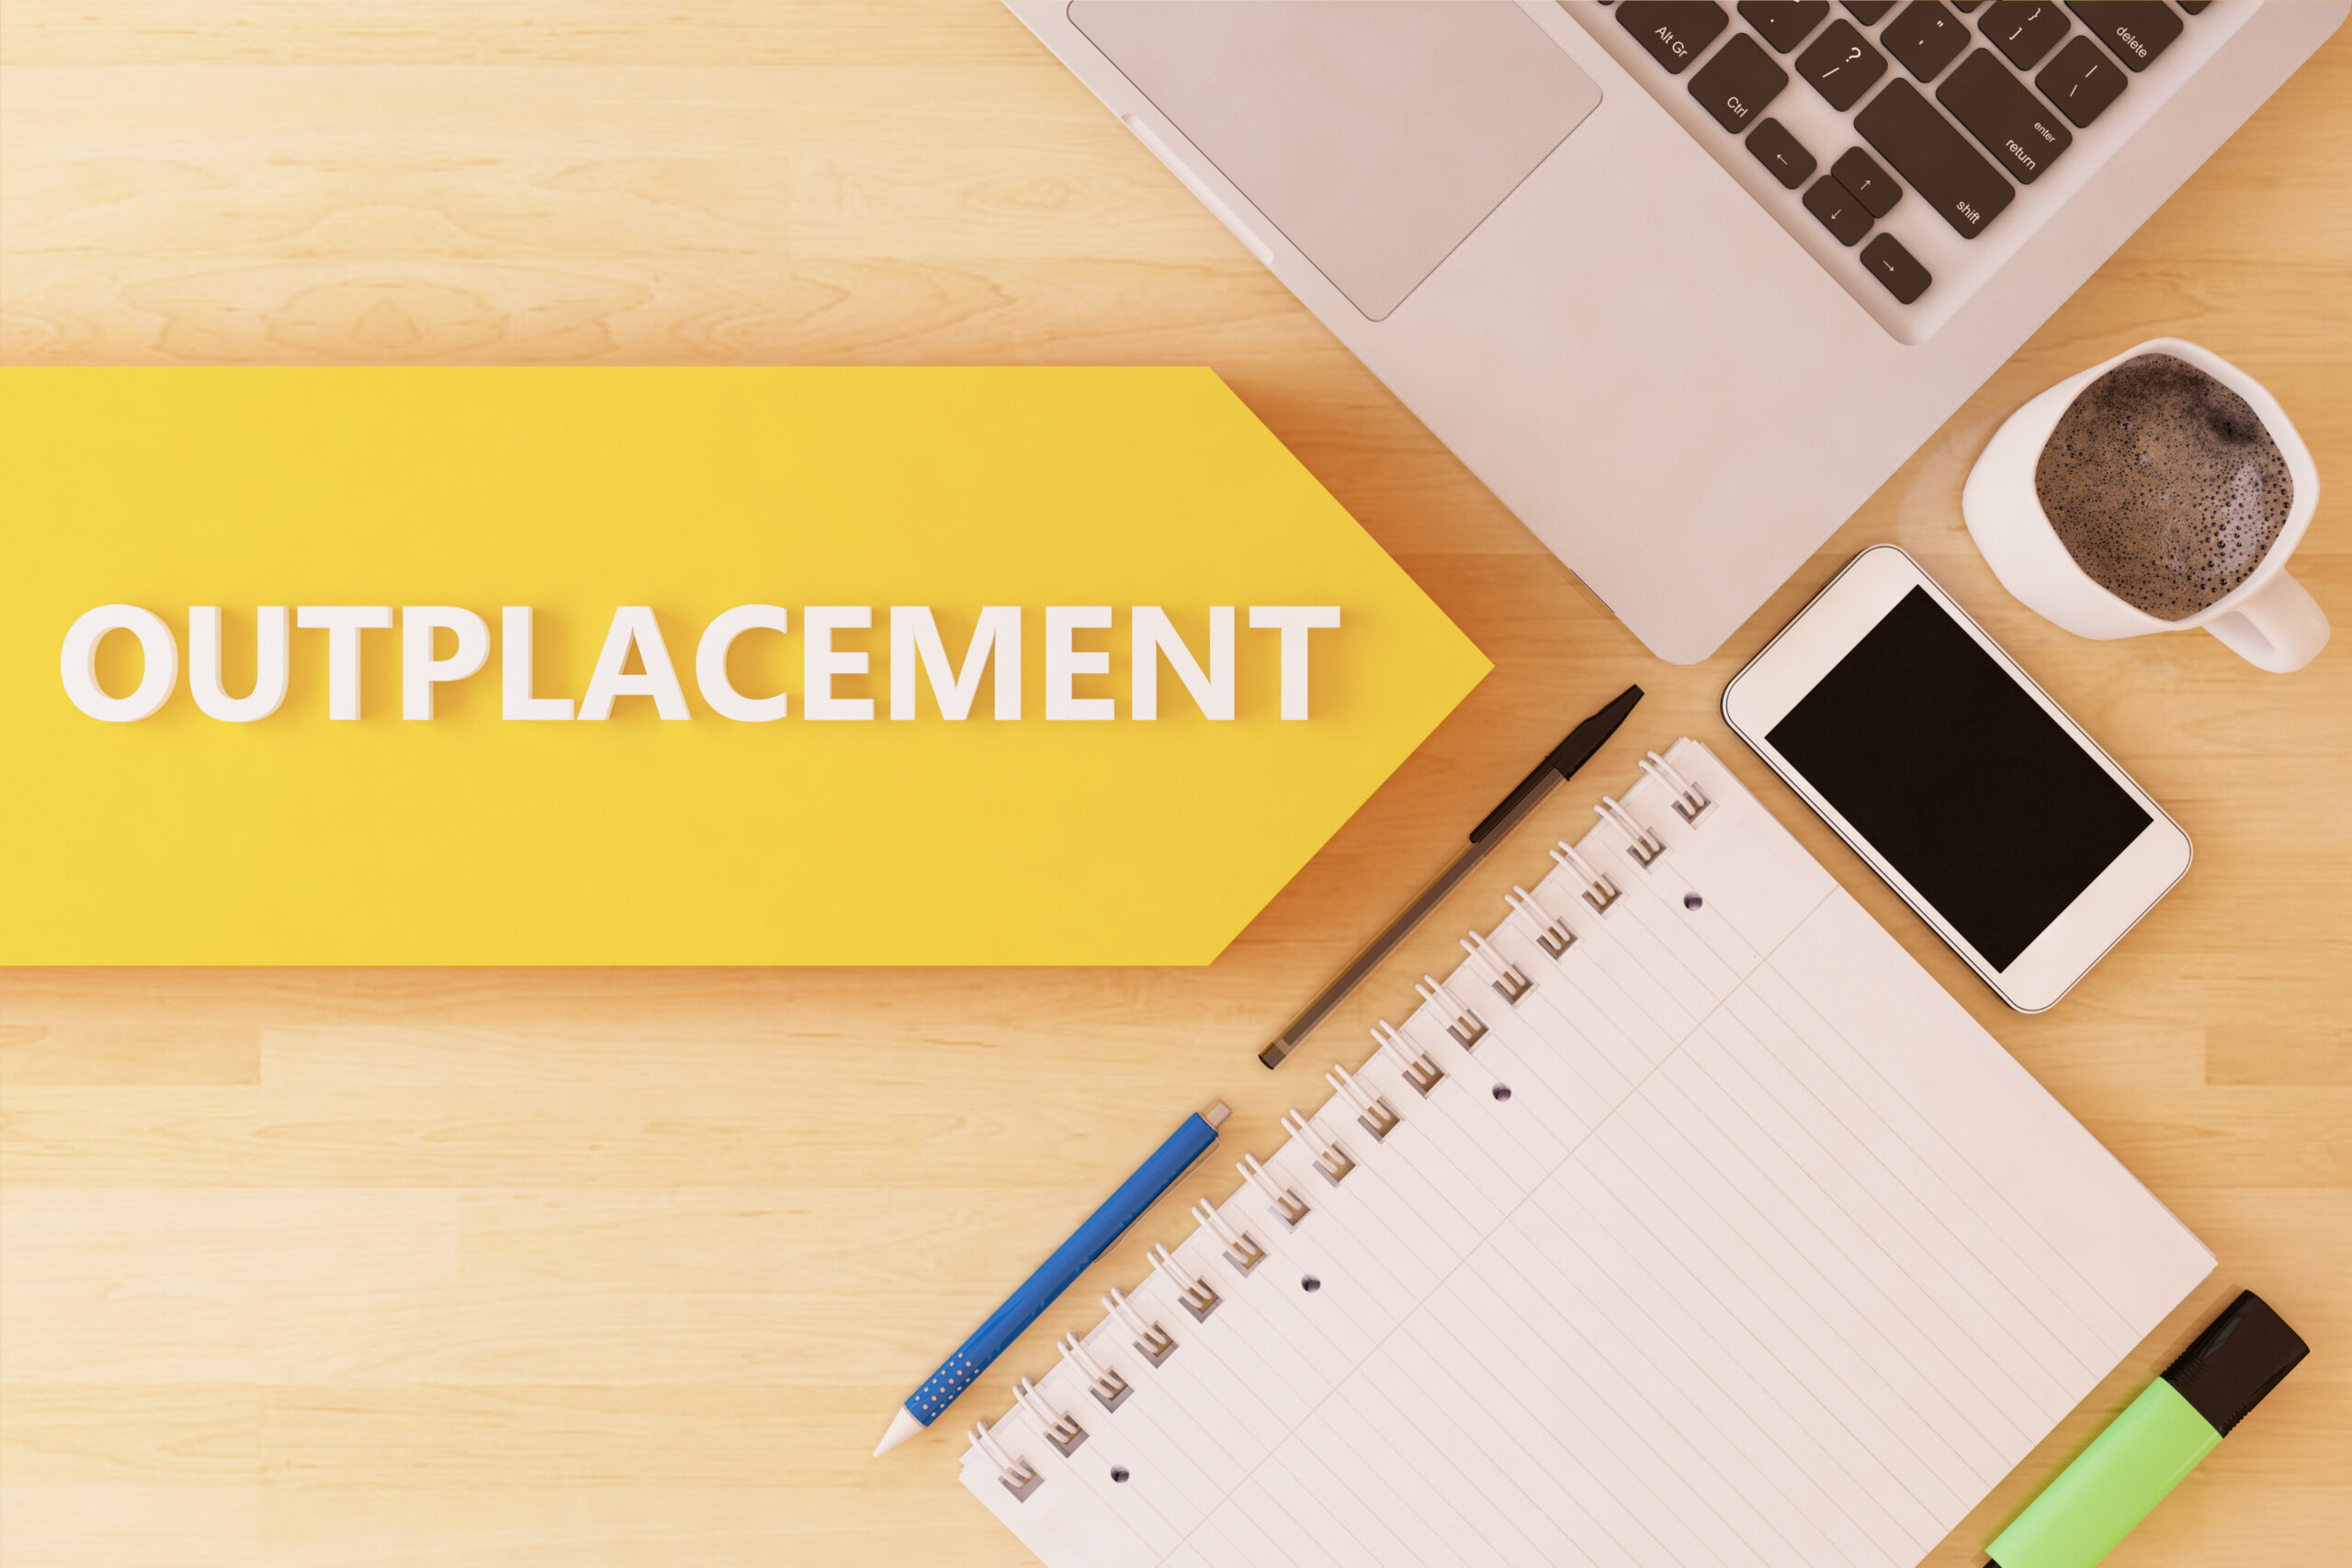 There can be many benefit when utilizing an outplacement service...check them out!